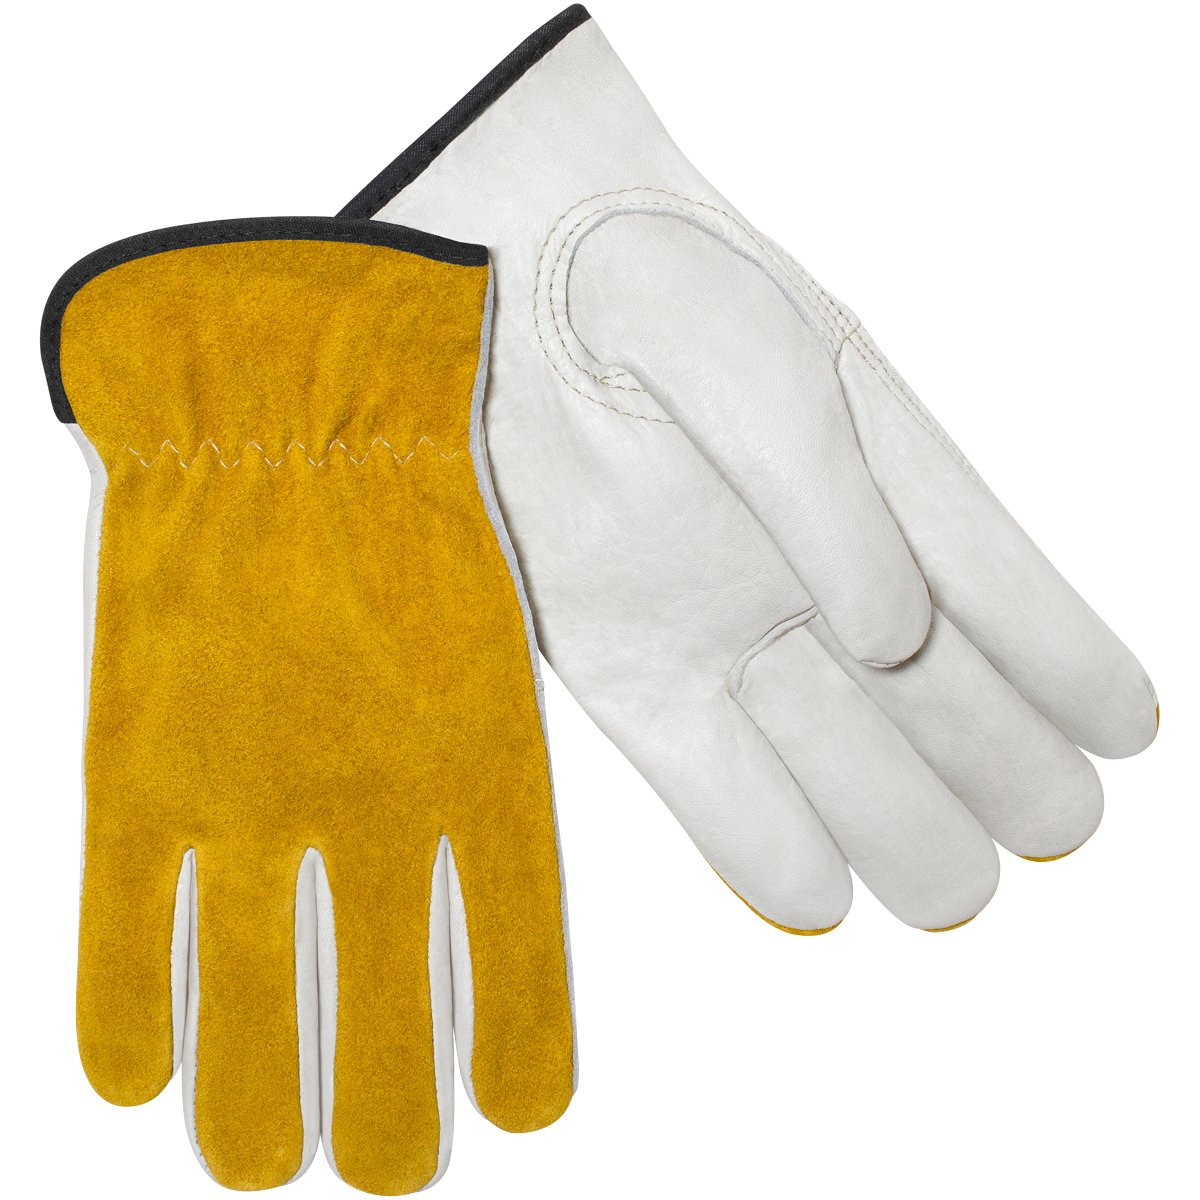 Steiner 0239-M Drivers Gloves, Tan Grain Cowhide Palm Gold Split Cowhide Back Unlined, Medium (12-Pack)